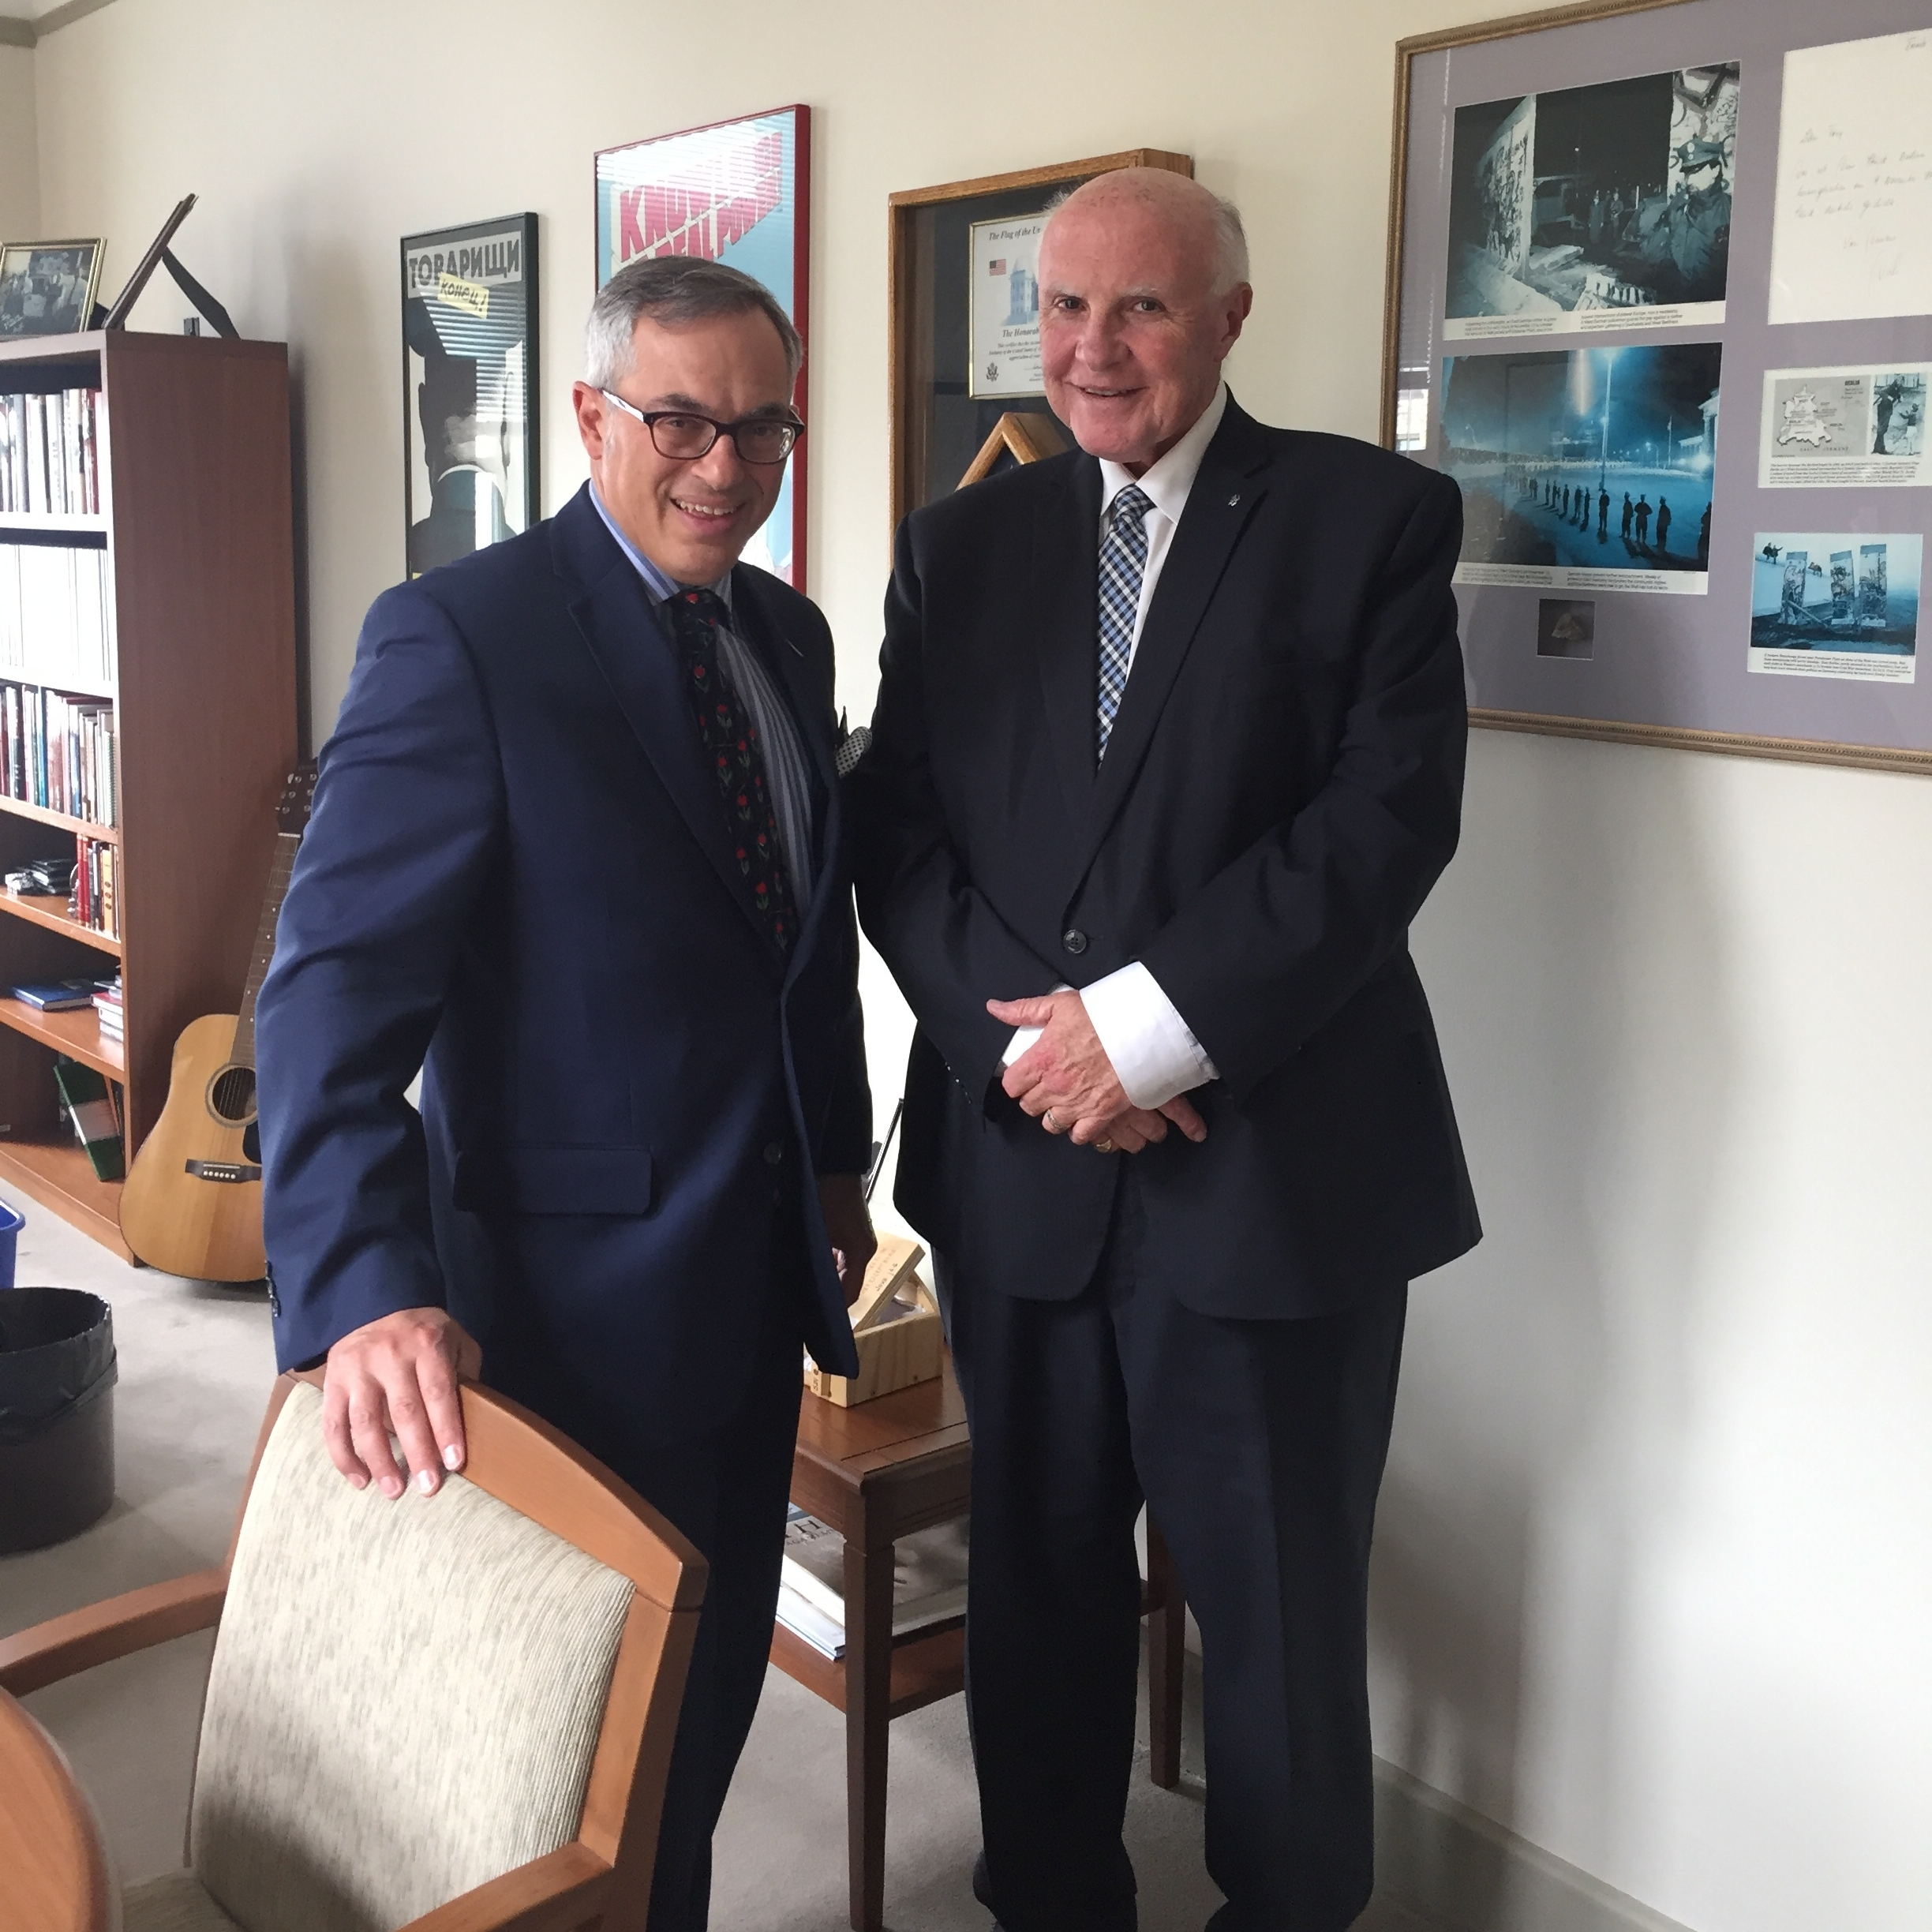 NCACT Spokesperson Gary Grant chatting with Member of Parliament Tony Clement regarding Bill S-5 in Ottawa, May 2017